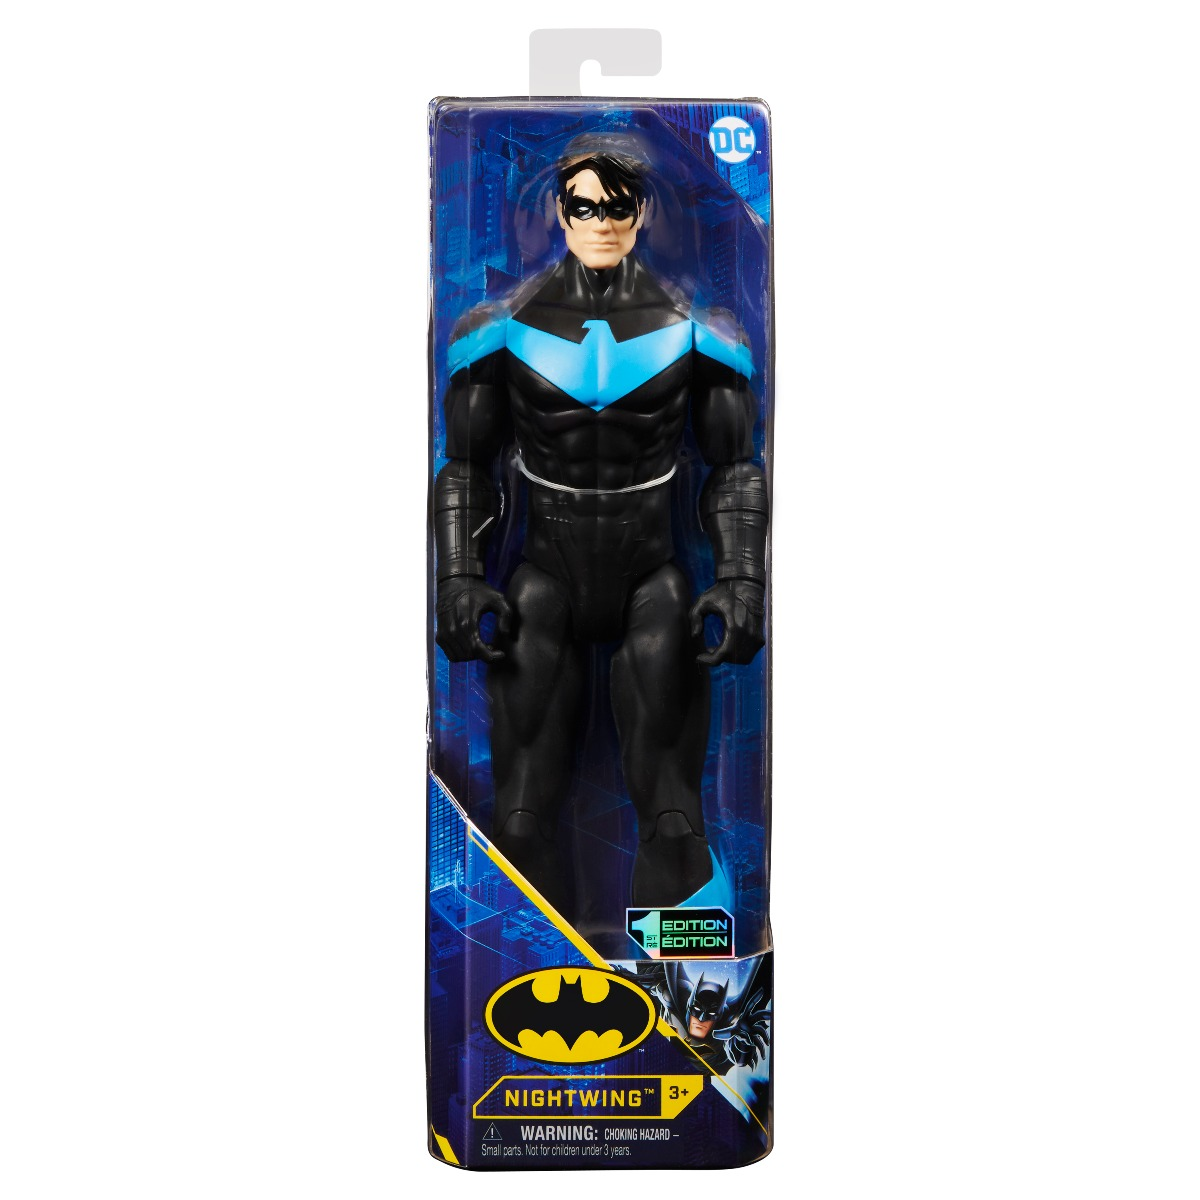 Figurina articulata Batman, Nightwing 20129642